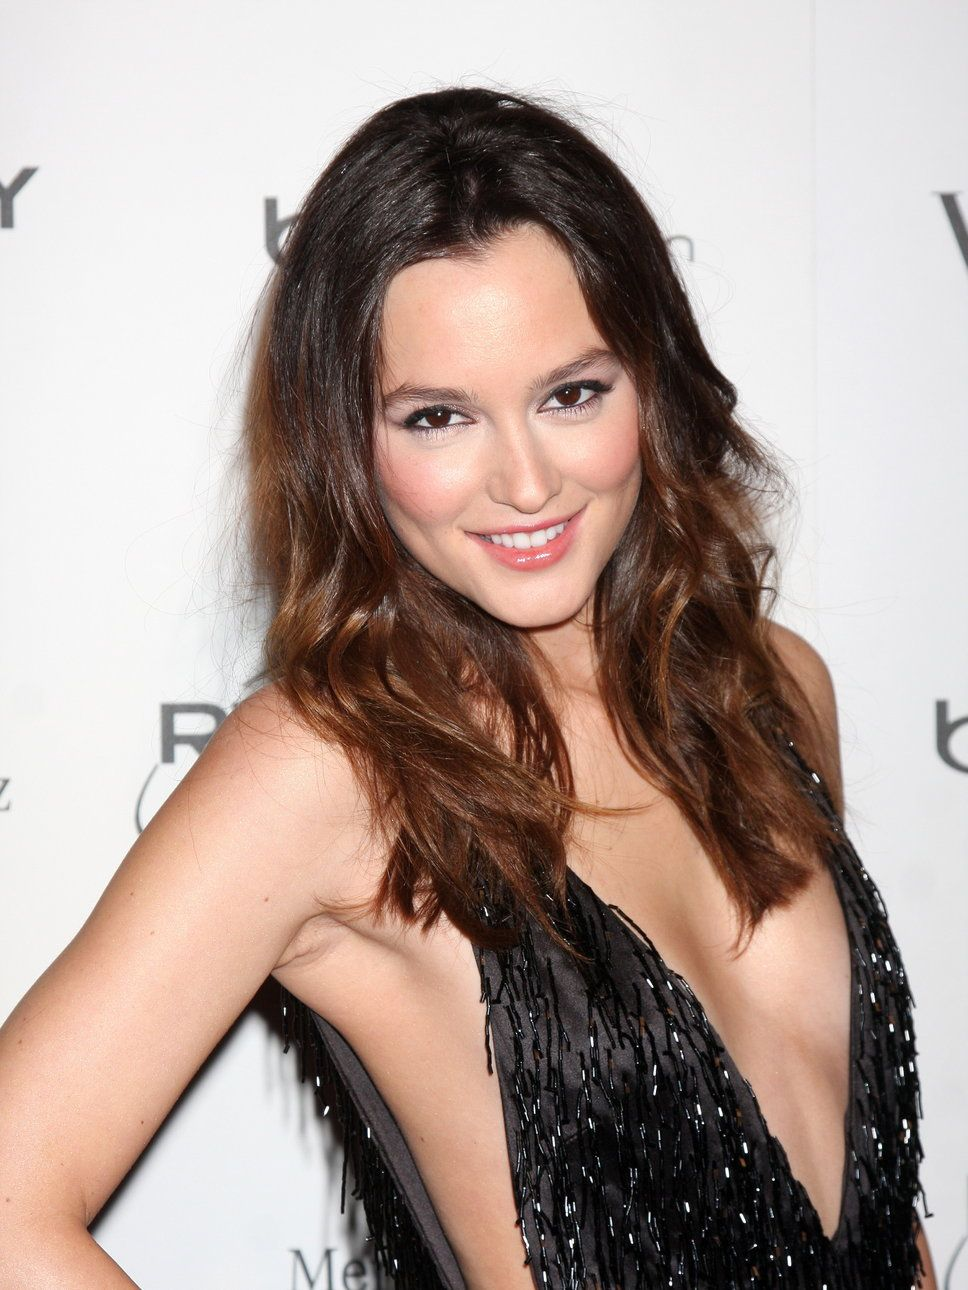 Cleavage Leighton Meester nude photos 2019